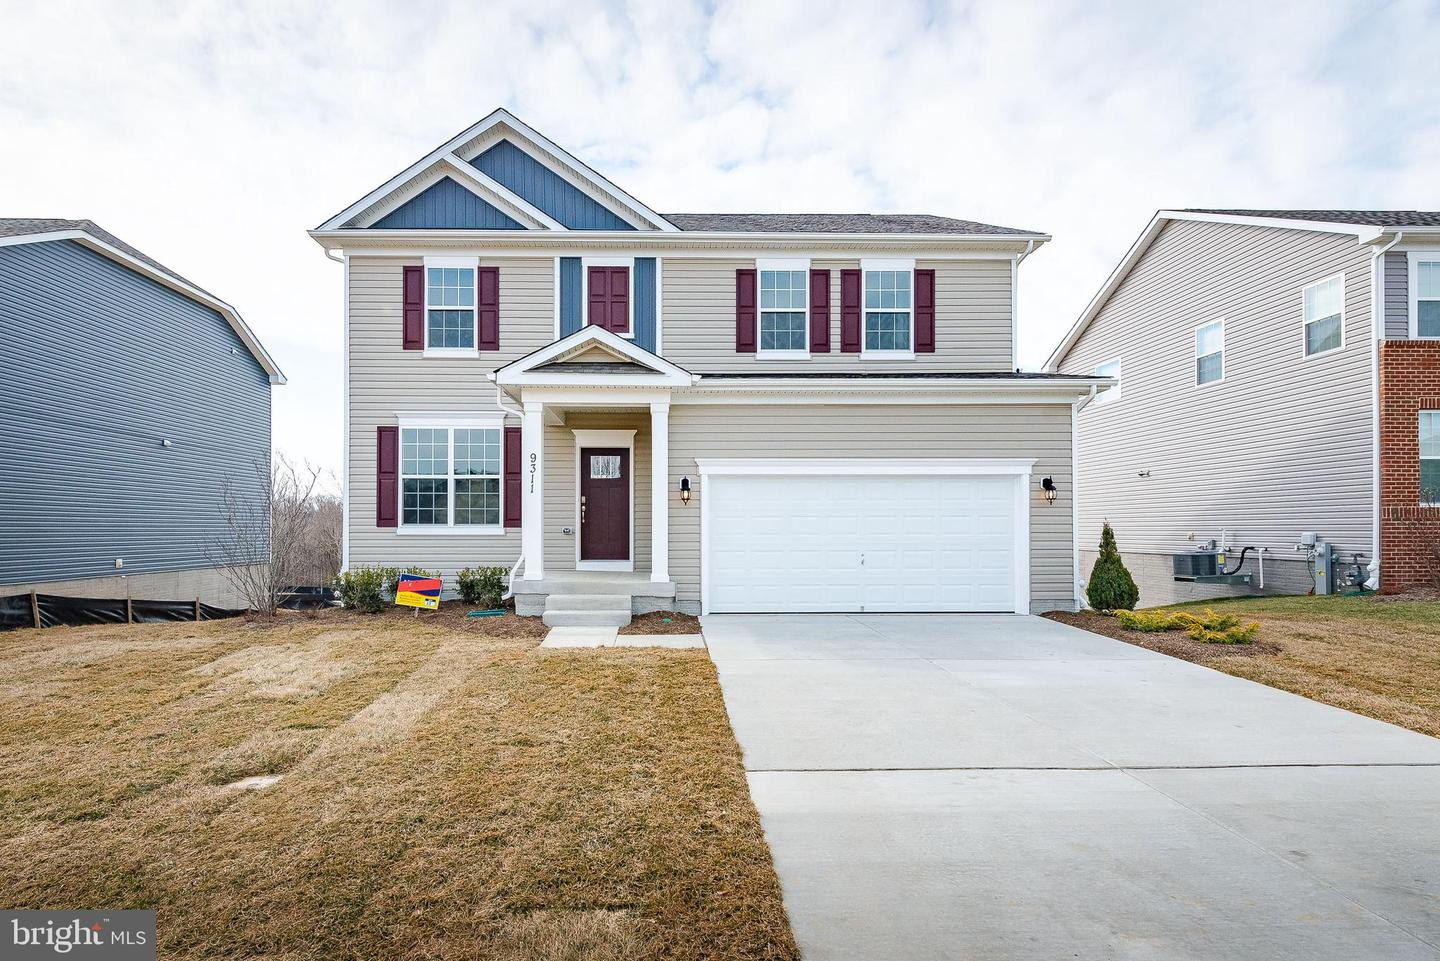 9311 SYDNEY WAY, LAUREL, Maryland